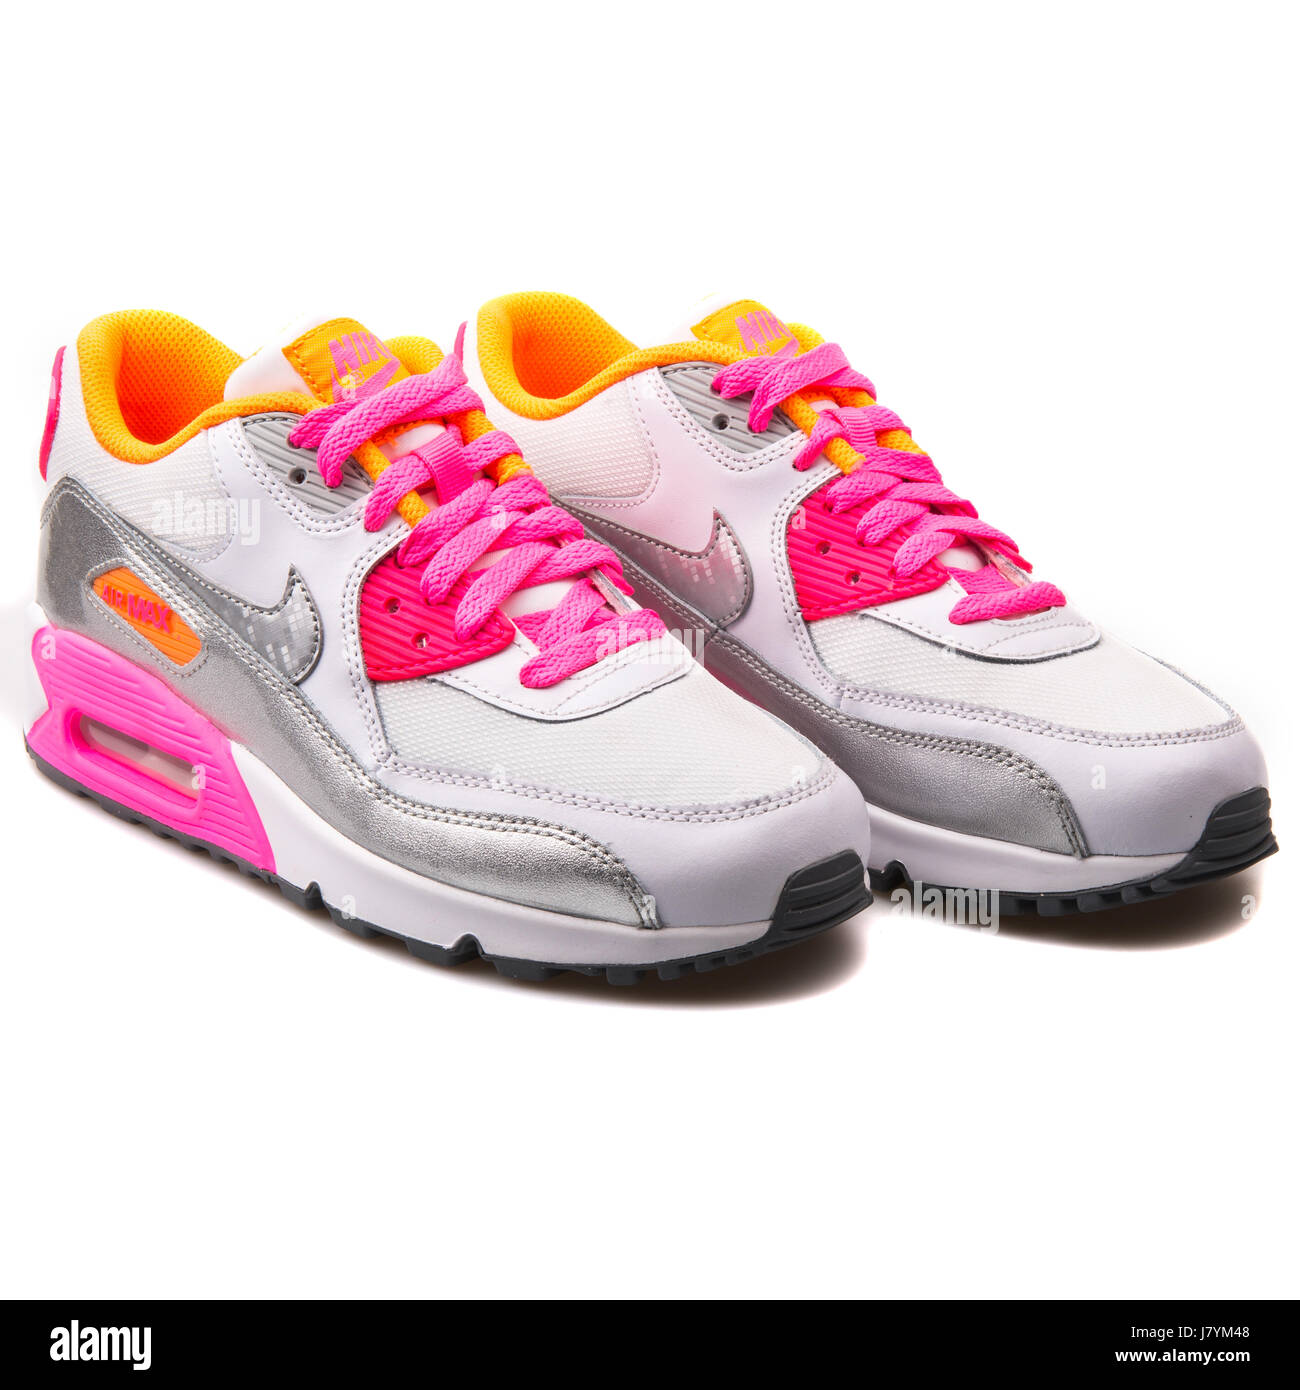 a48df332 Nike Air Max 90 Mesh (GS) Youth White, Silver and Pink Running Sneakers -  724855-101